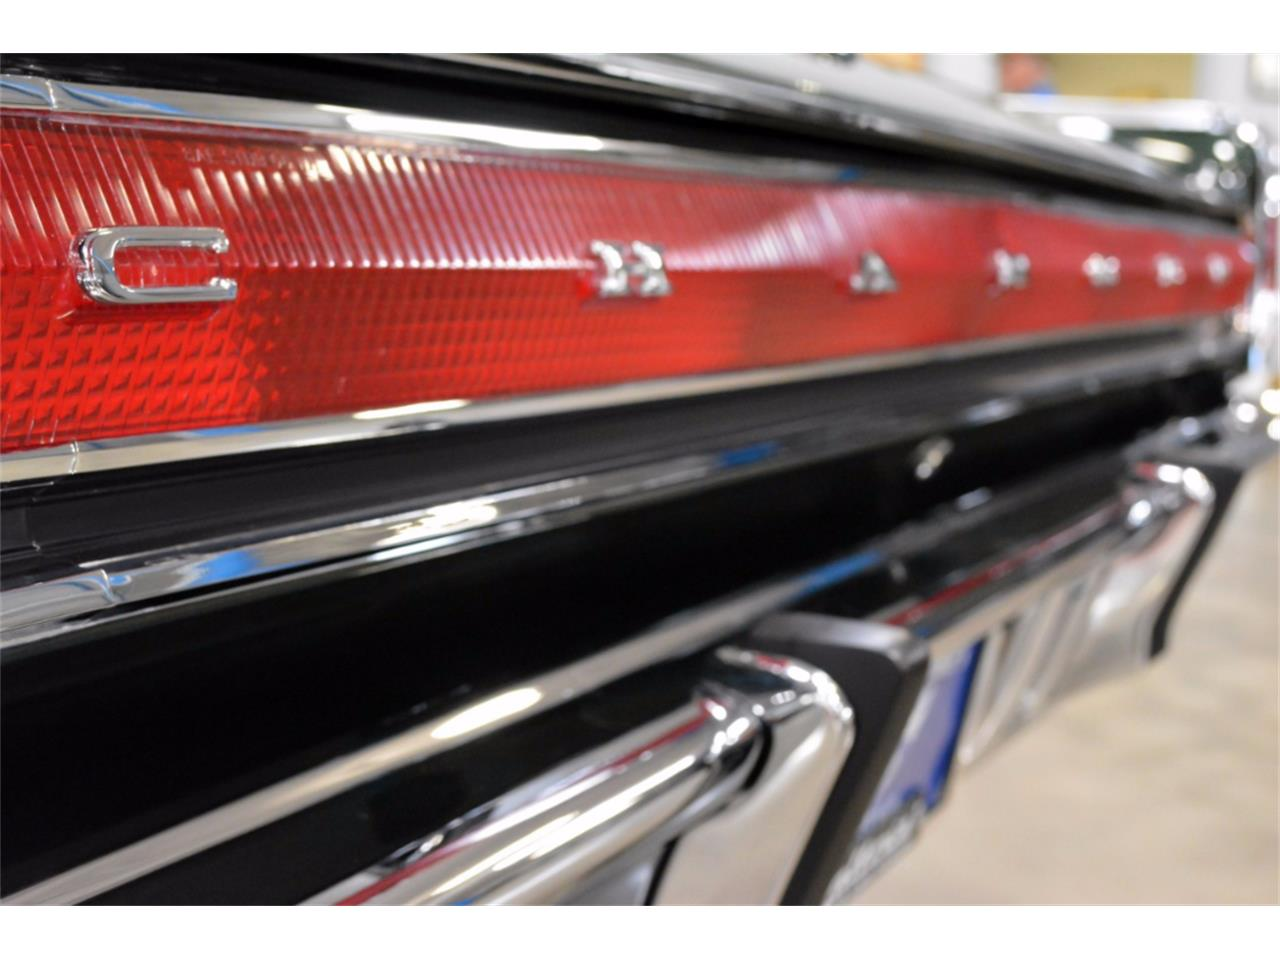 Large Picture of 1967 Dodge Charger located in Ohio - $175,000.00 Offered by John Kufleitner's Galleria - LKM1